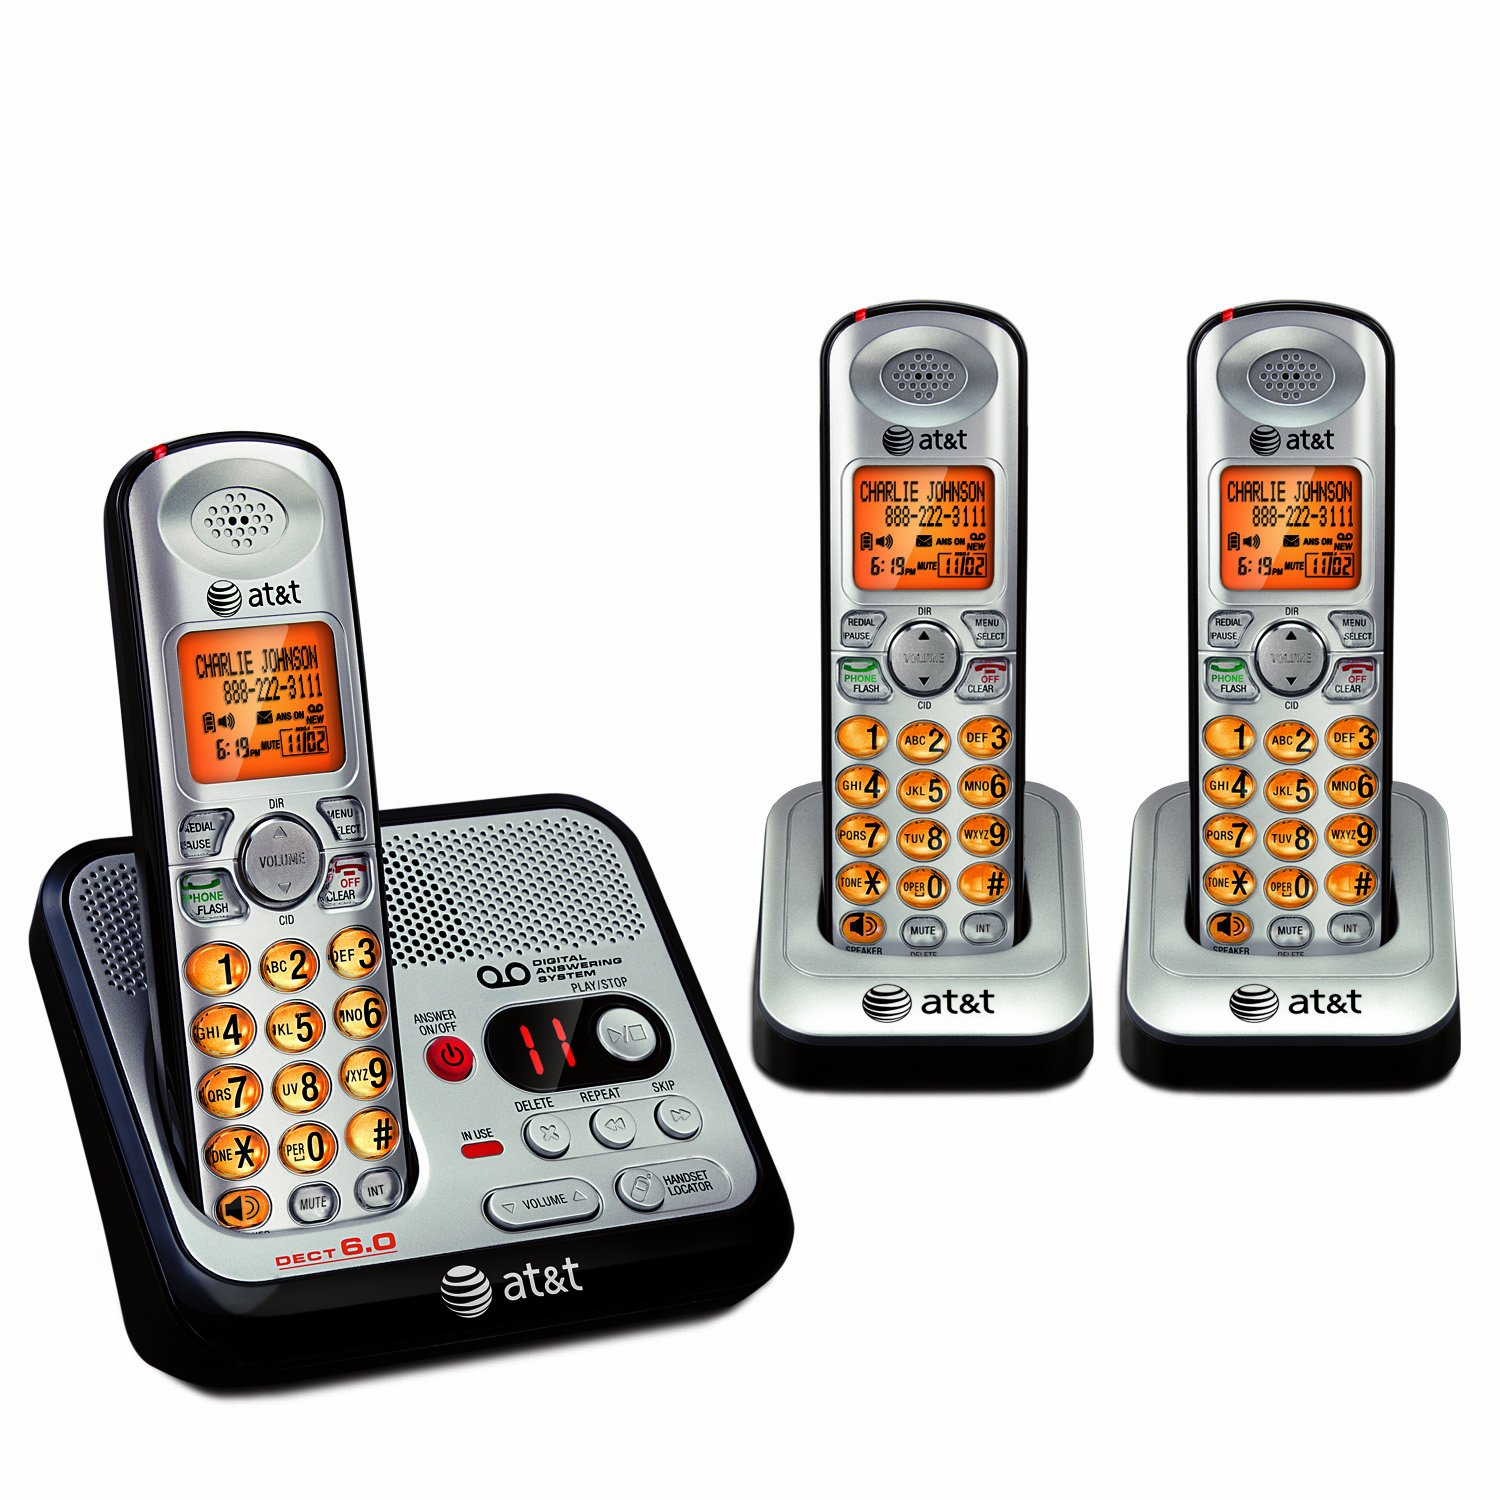 Amazon.com: AT&T EL52300 3-Handset DECT 6.0 Cordless Phone with ...